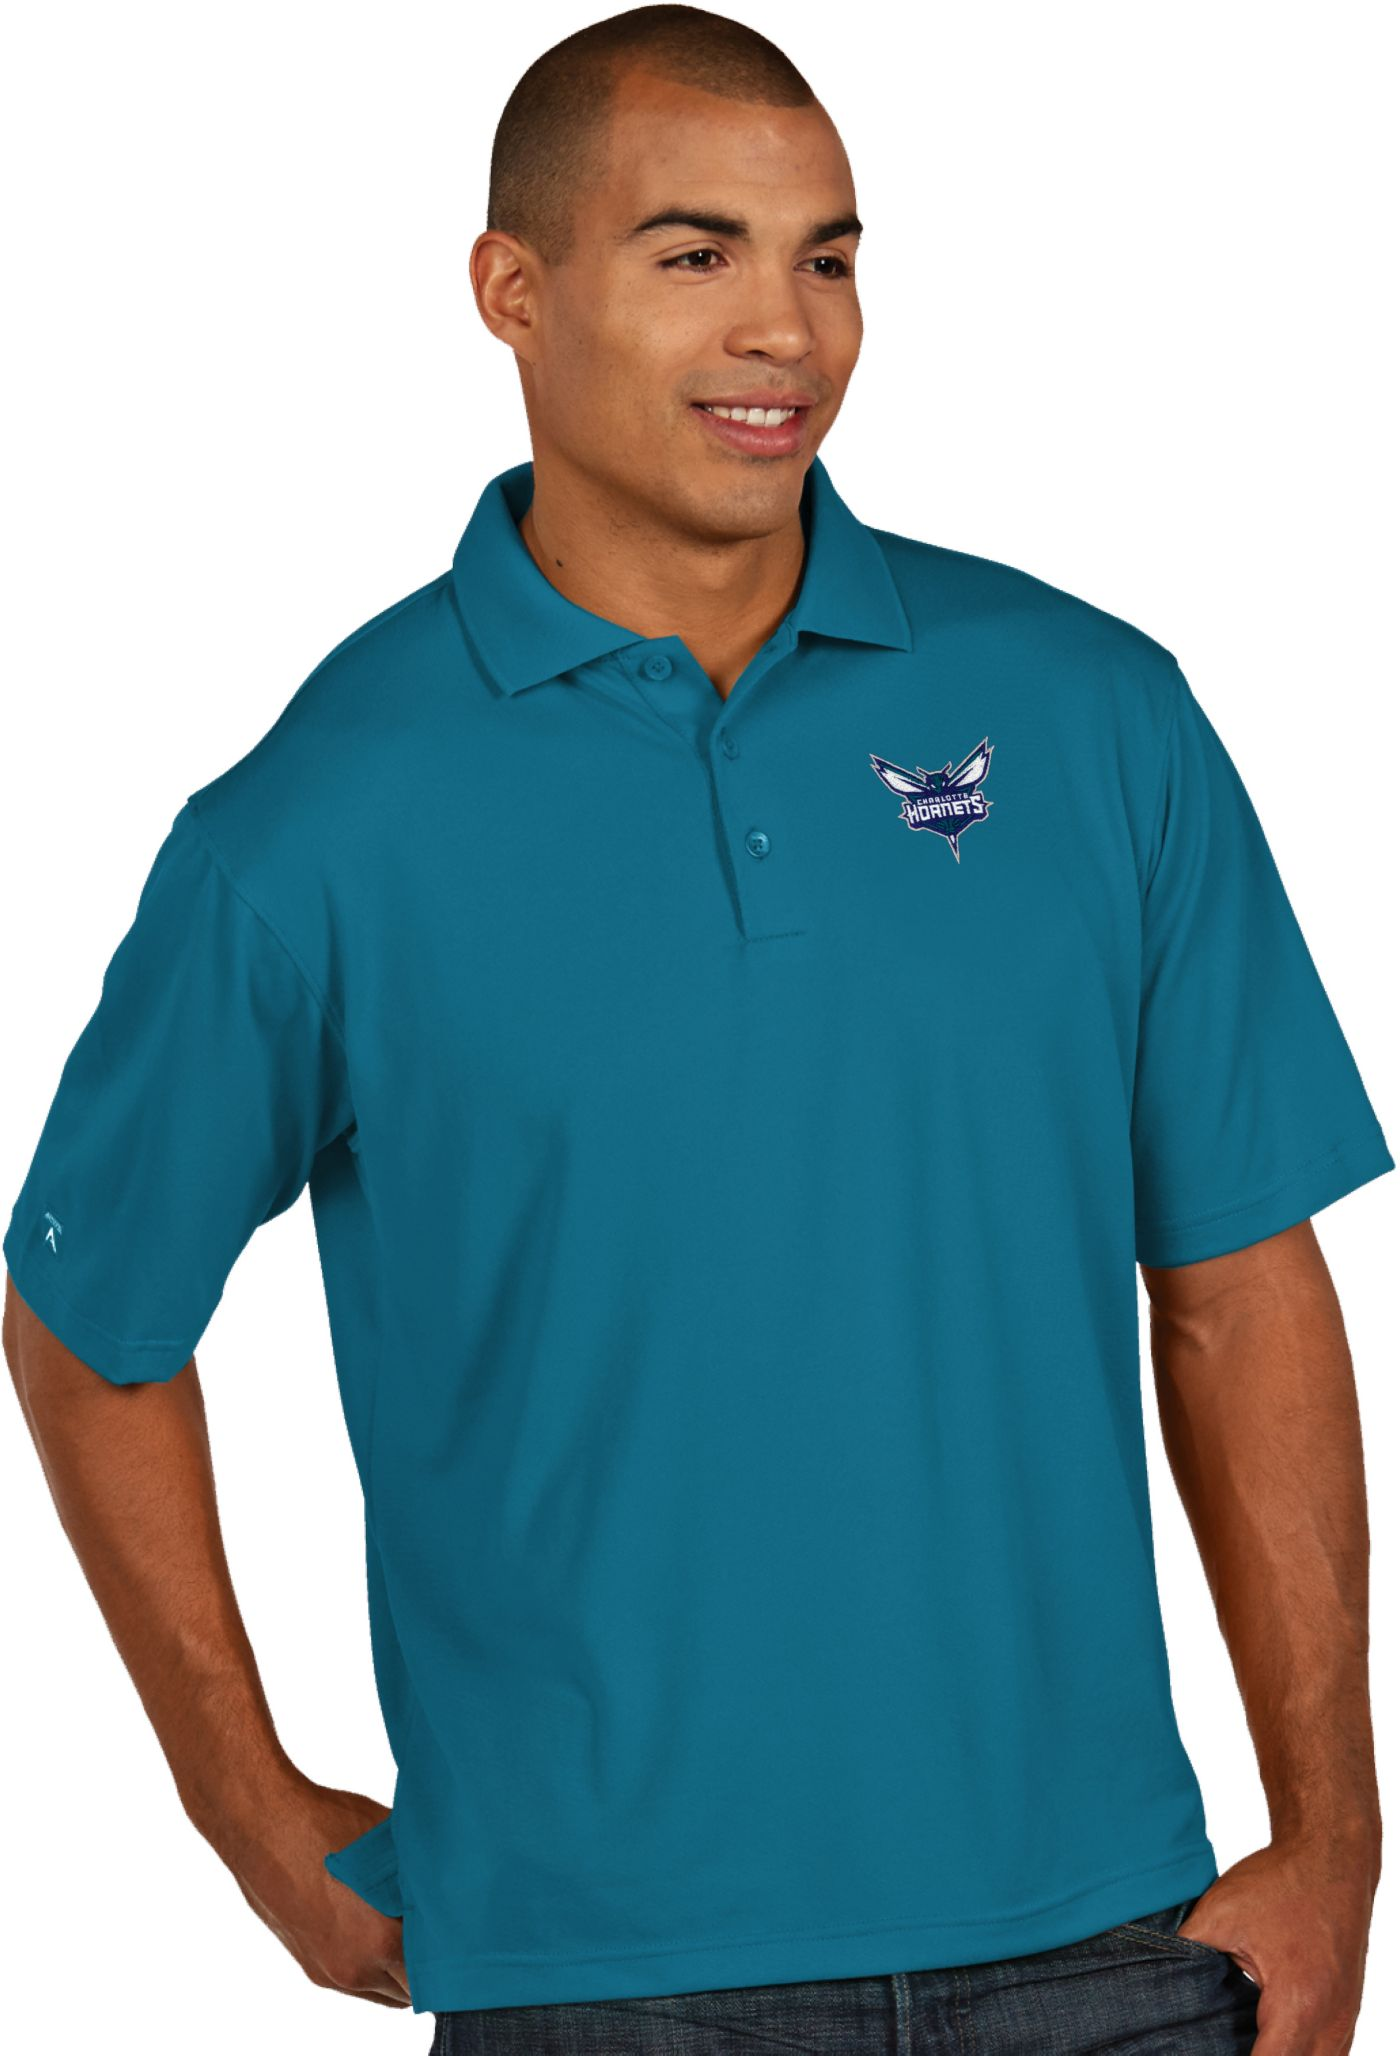 Antigua Men's Charlotte Hornets Xtra-Lite Teal Pique Performance Polo